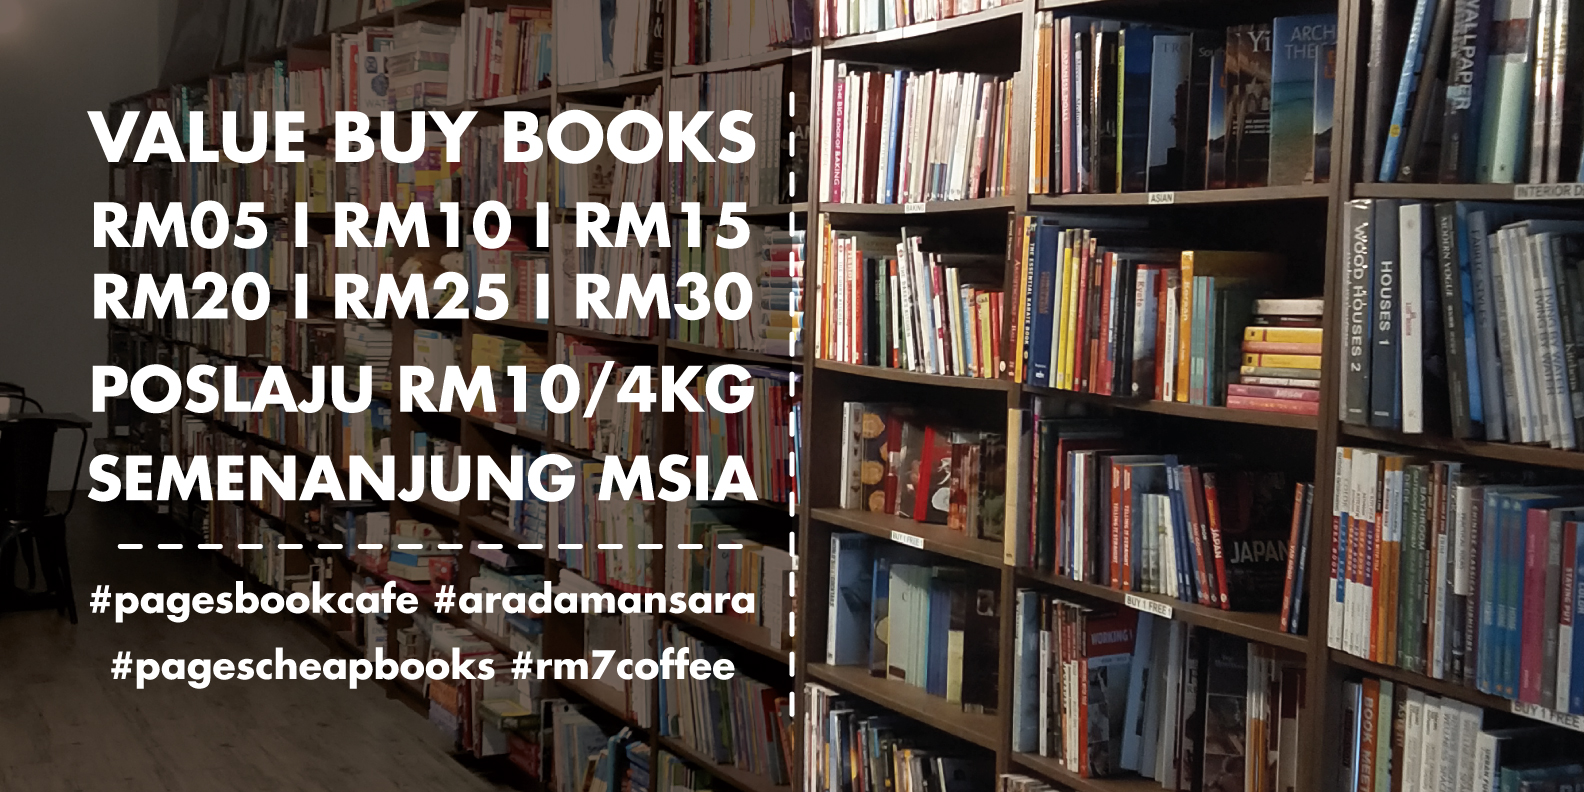 Pages Cheap Books |